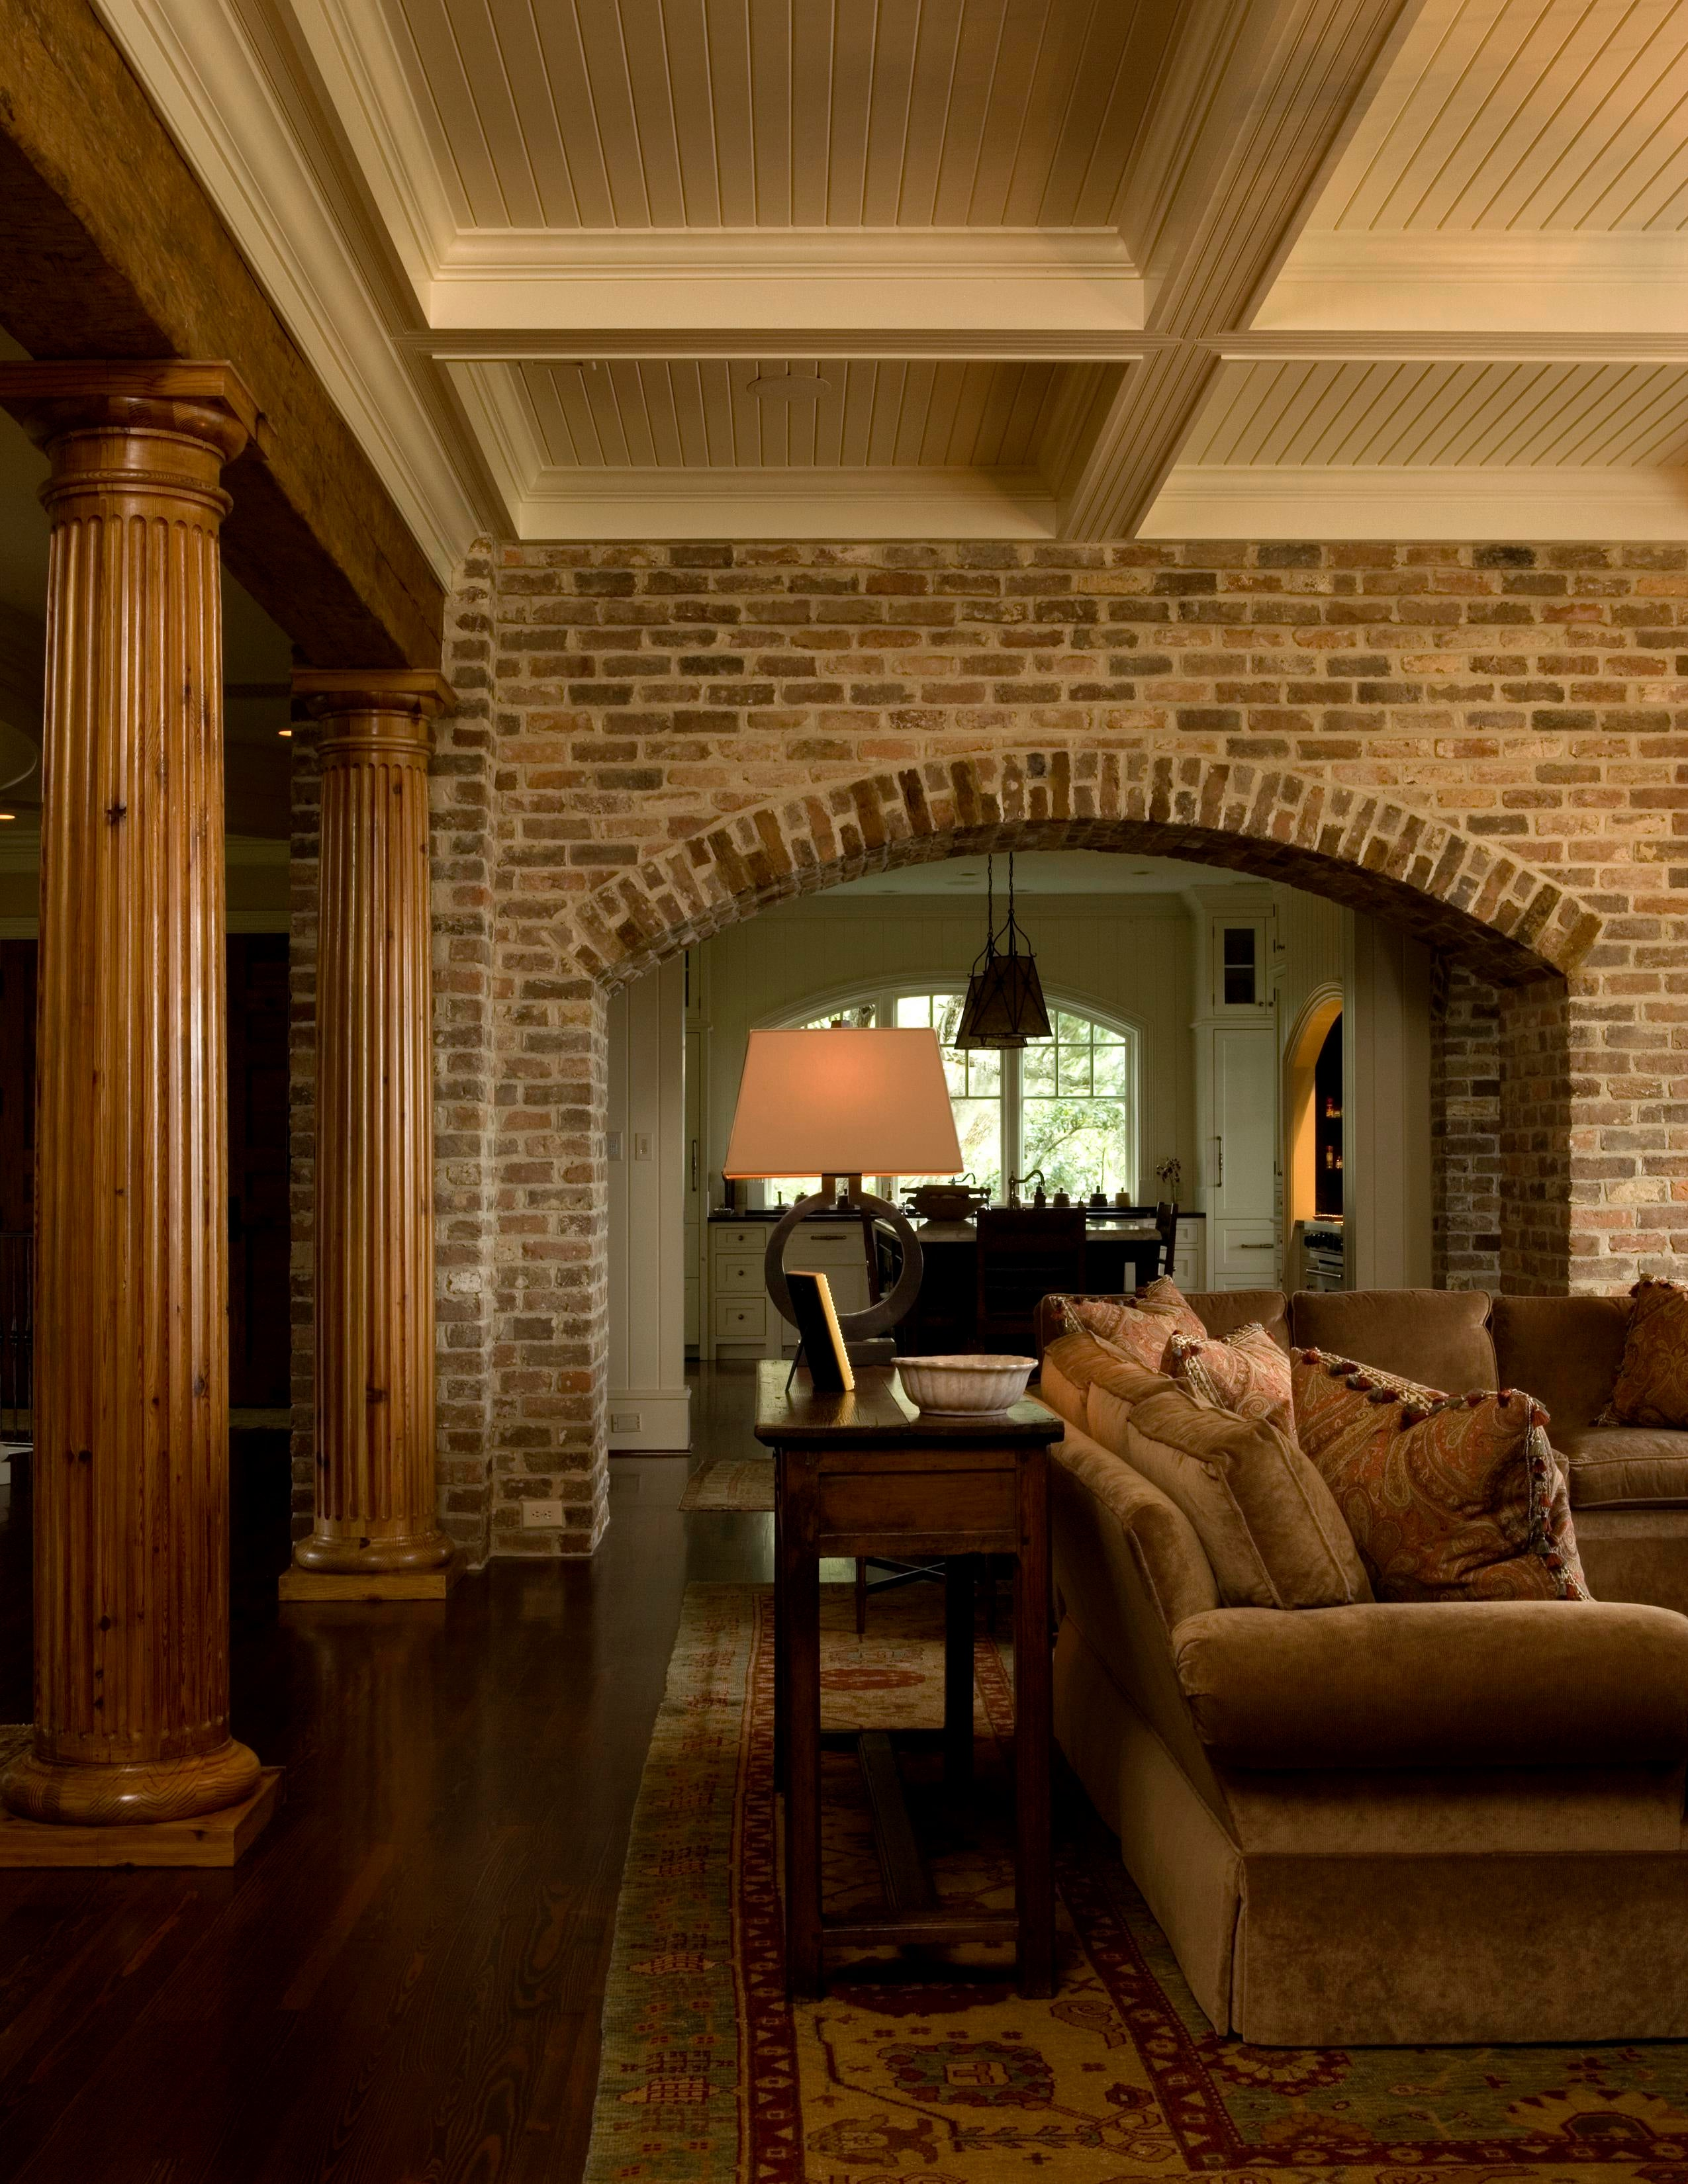 Living Room With Brick Arch, Natural Fluted Columns And Painted Wood Beams